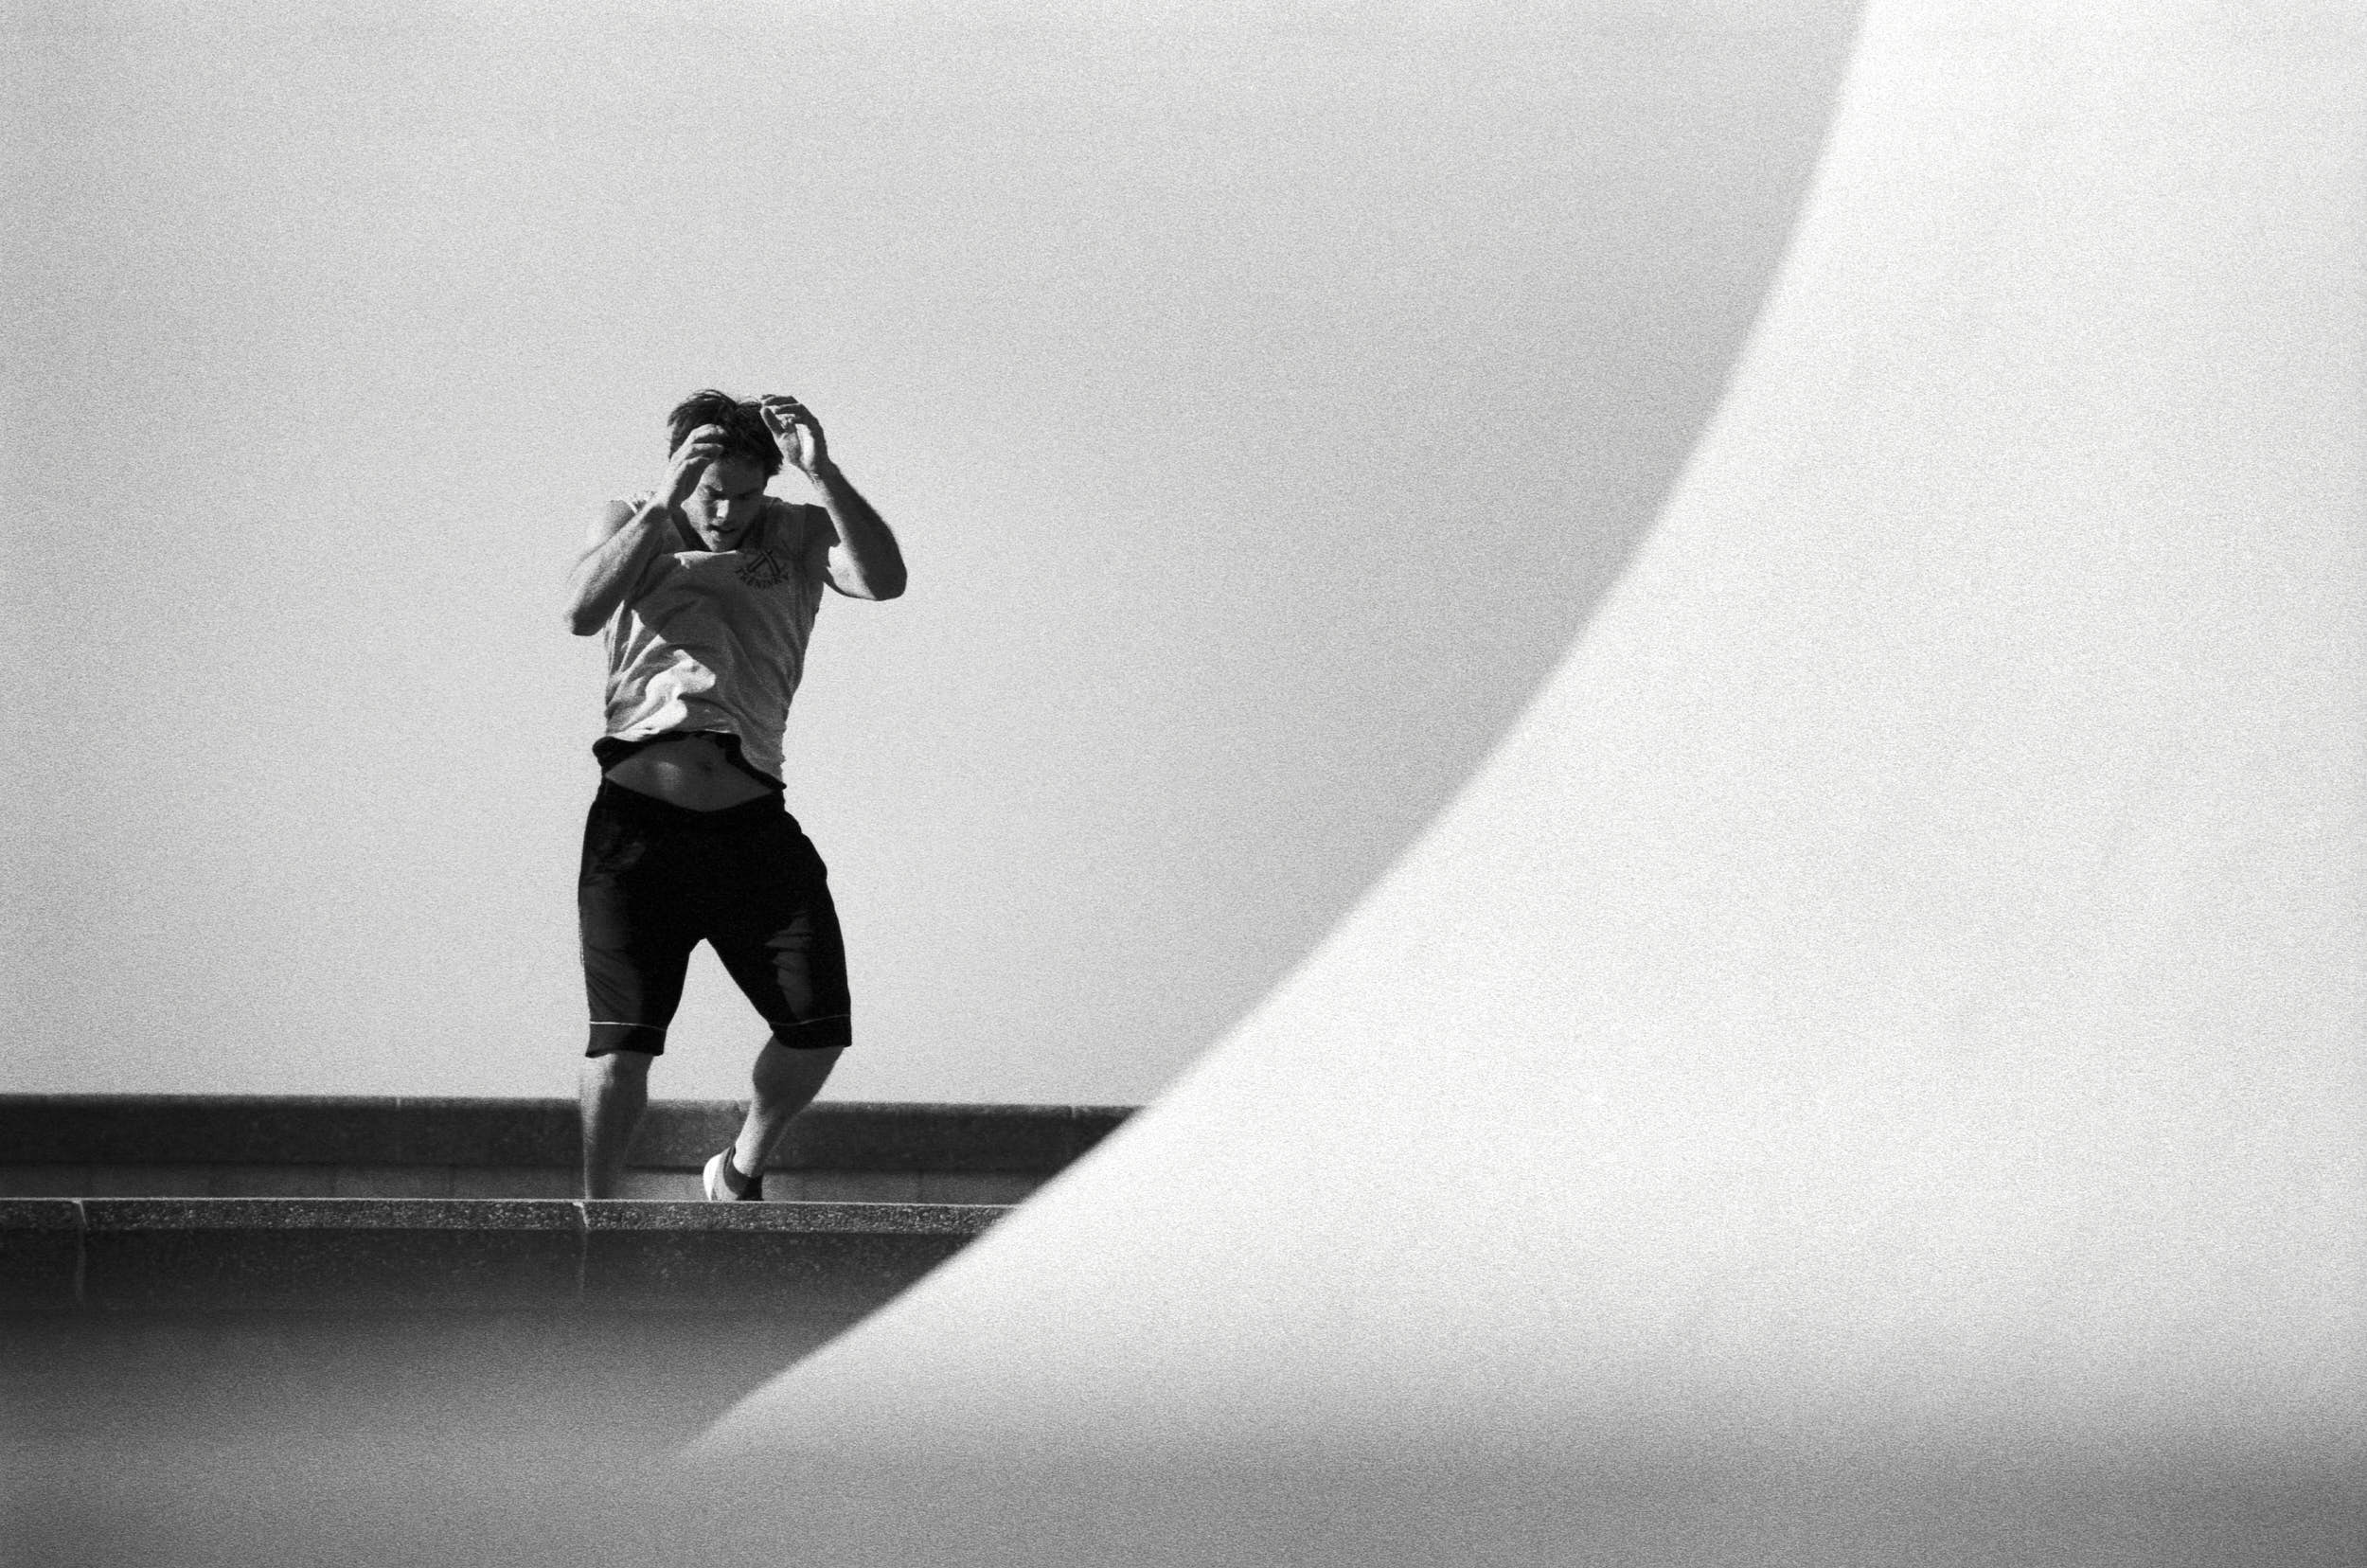 Fitness athlete working out in a black and white geometrical composition.